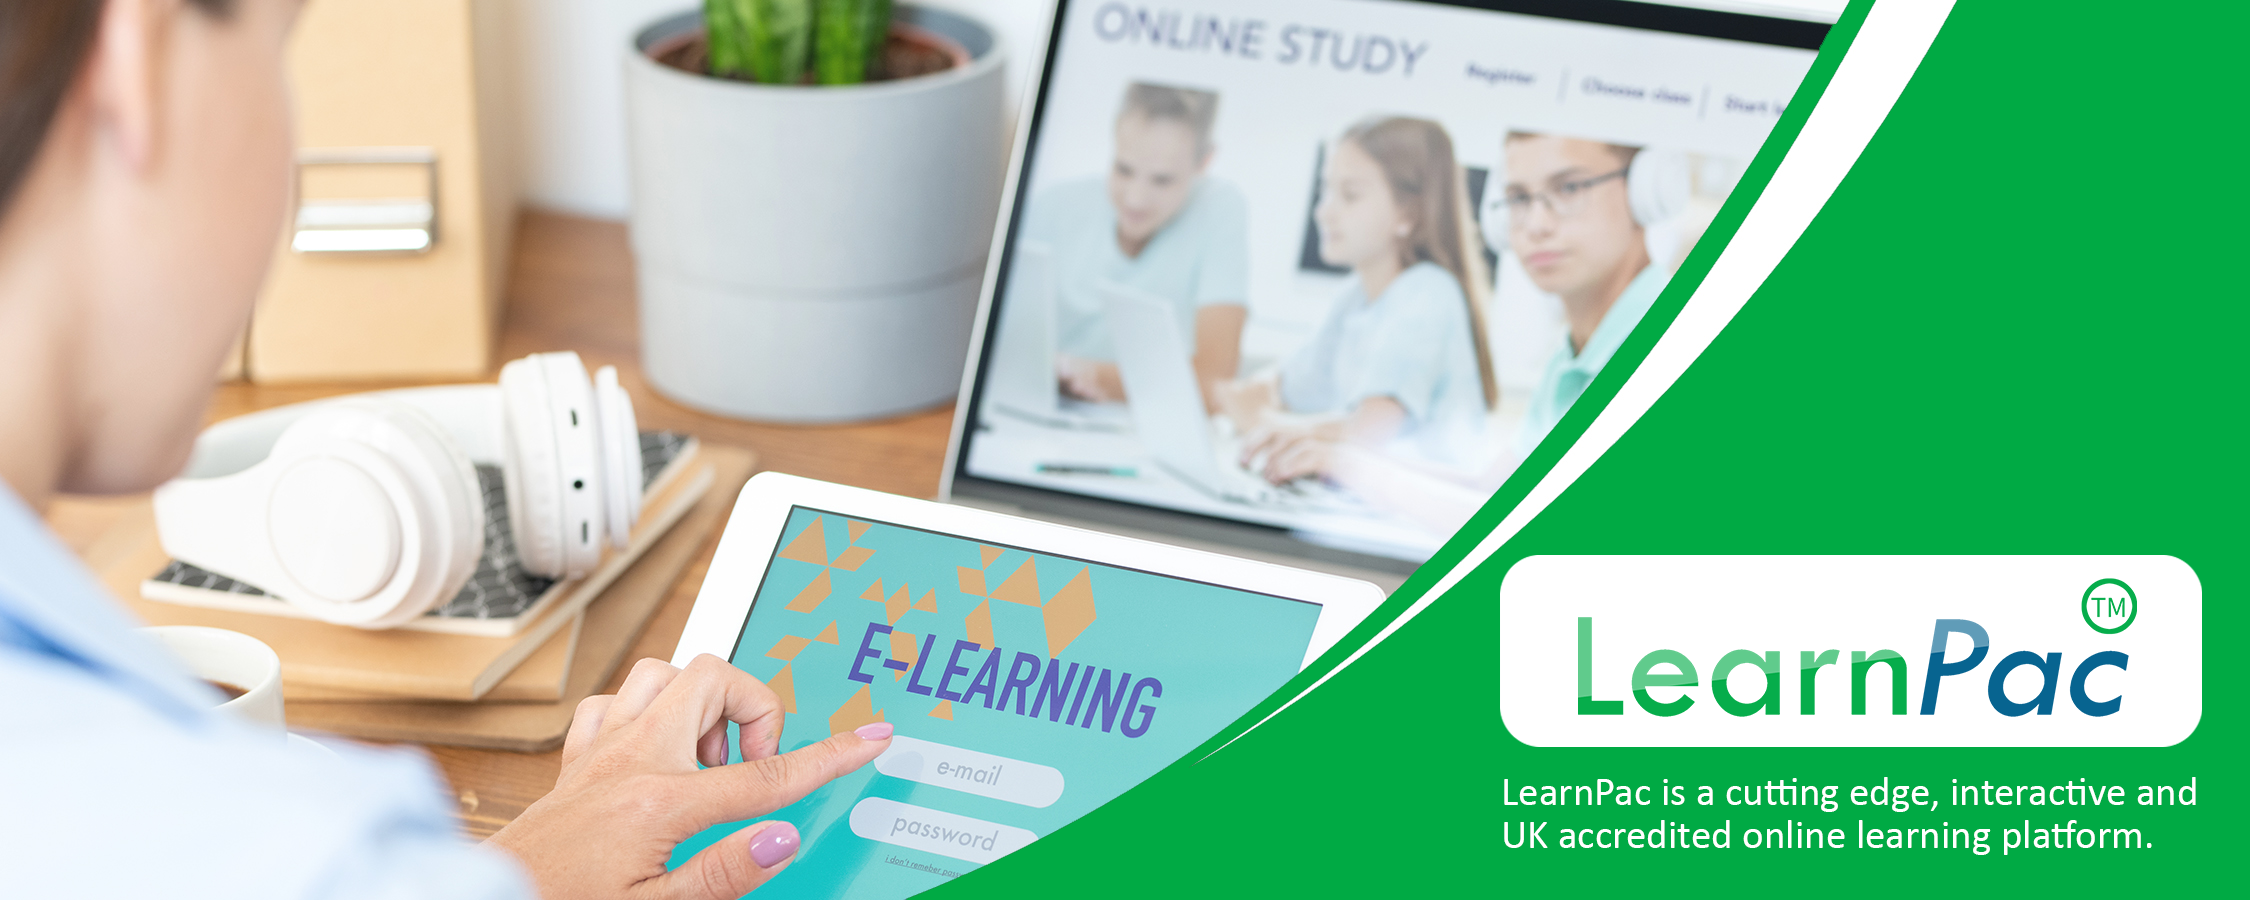 Care Certificate Standard 2 – Your Personal Development - Online Learning Courses - E-Learning Courses - LearnPac Systems UK -